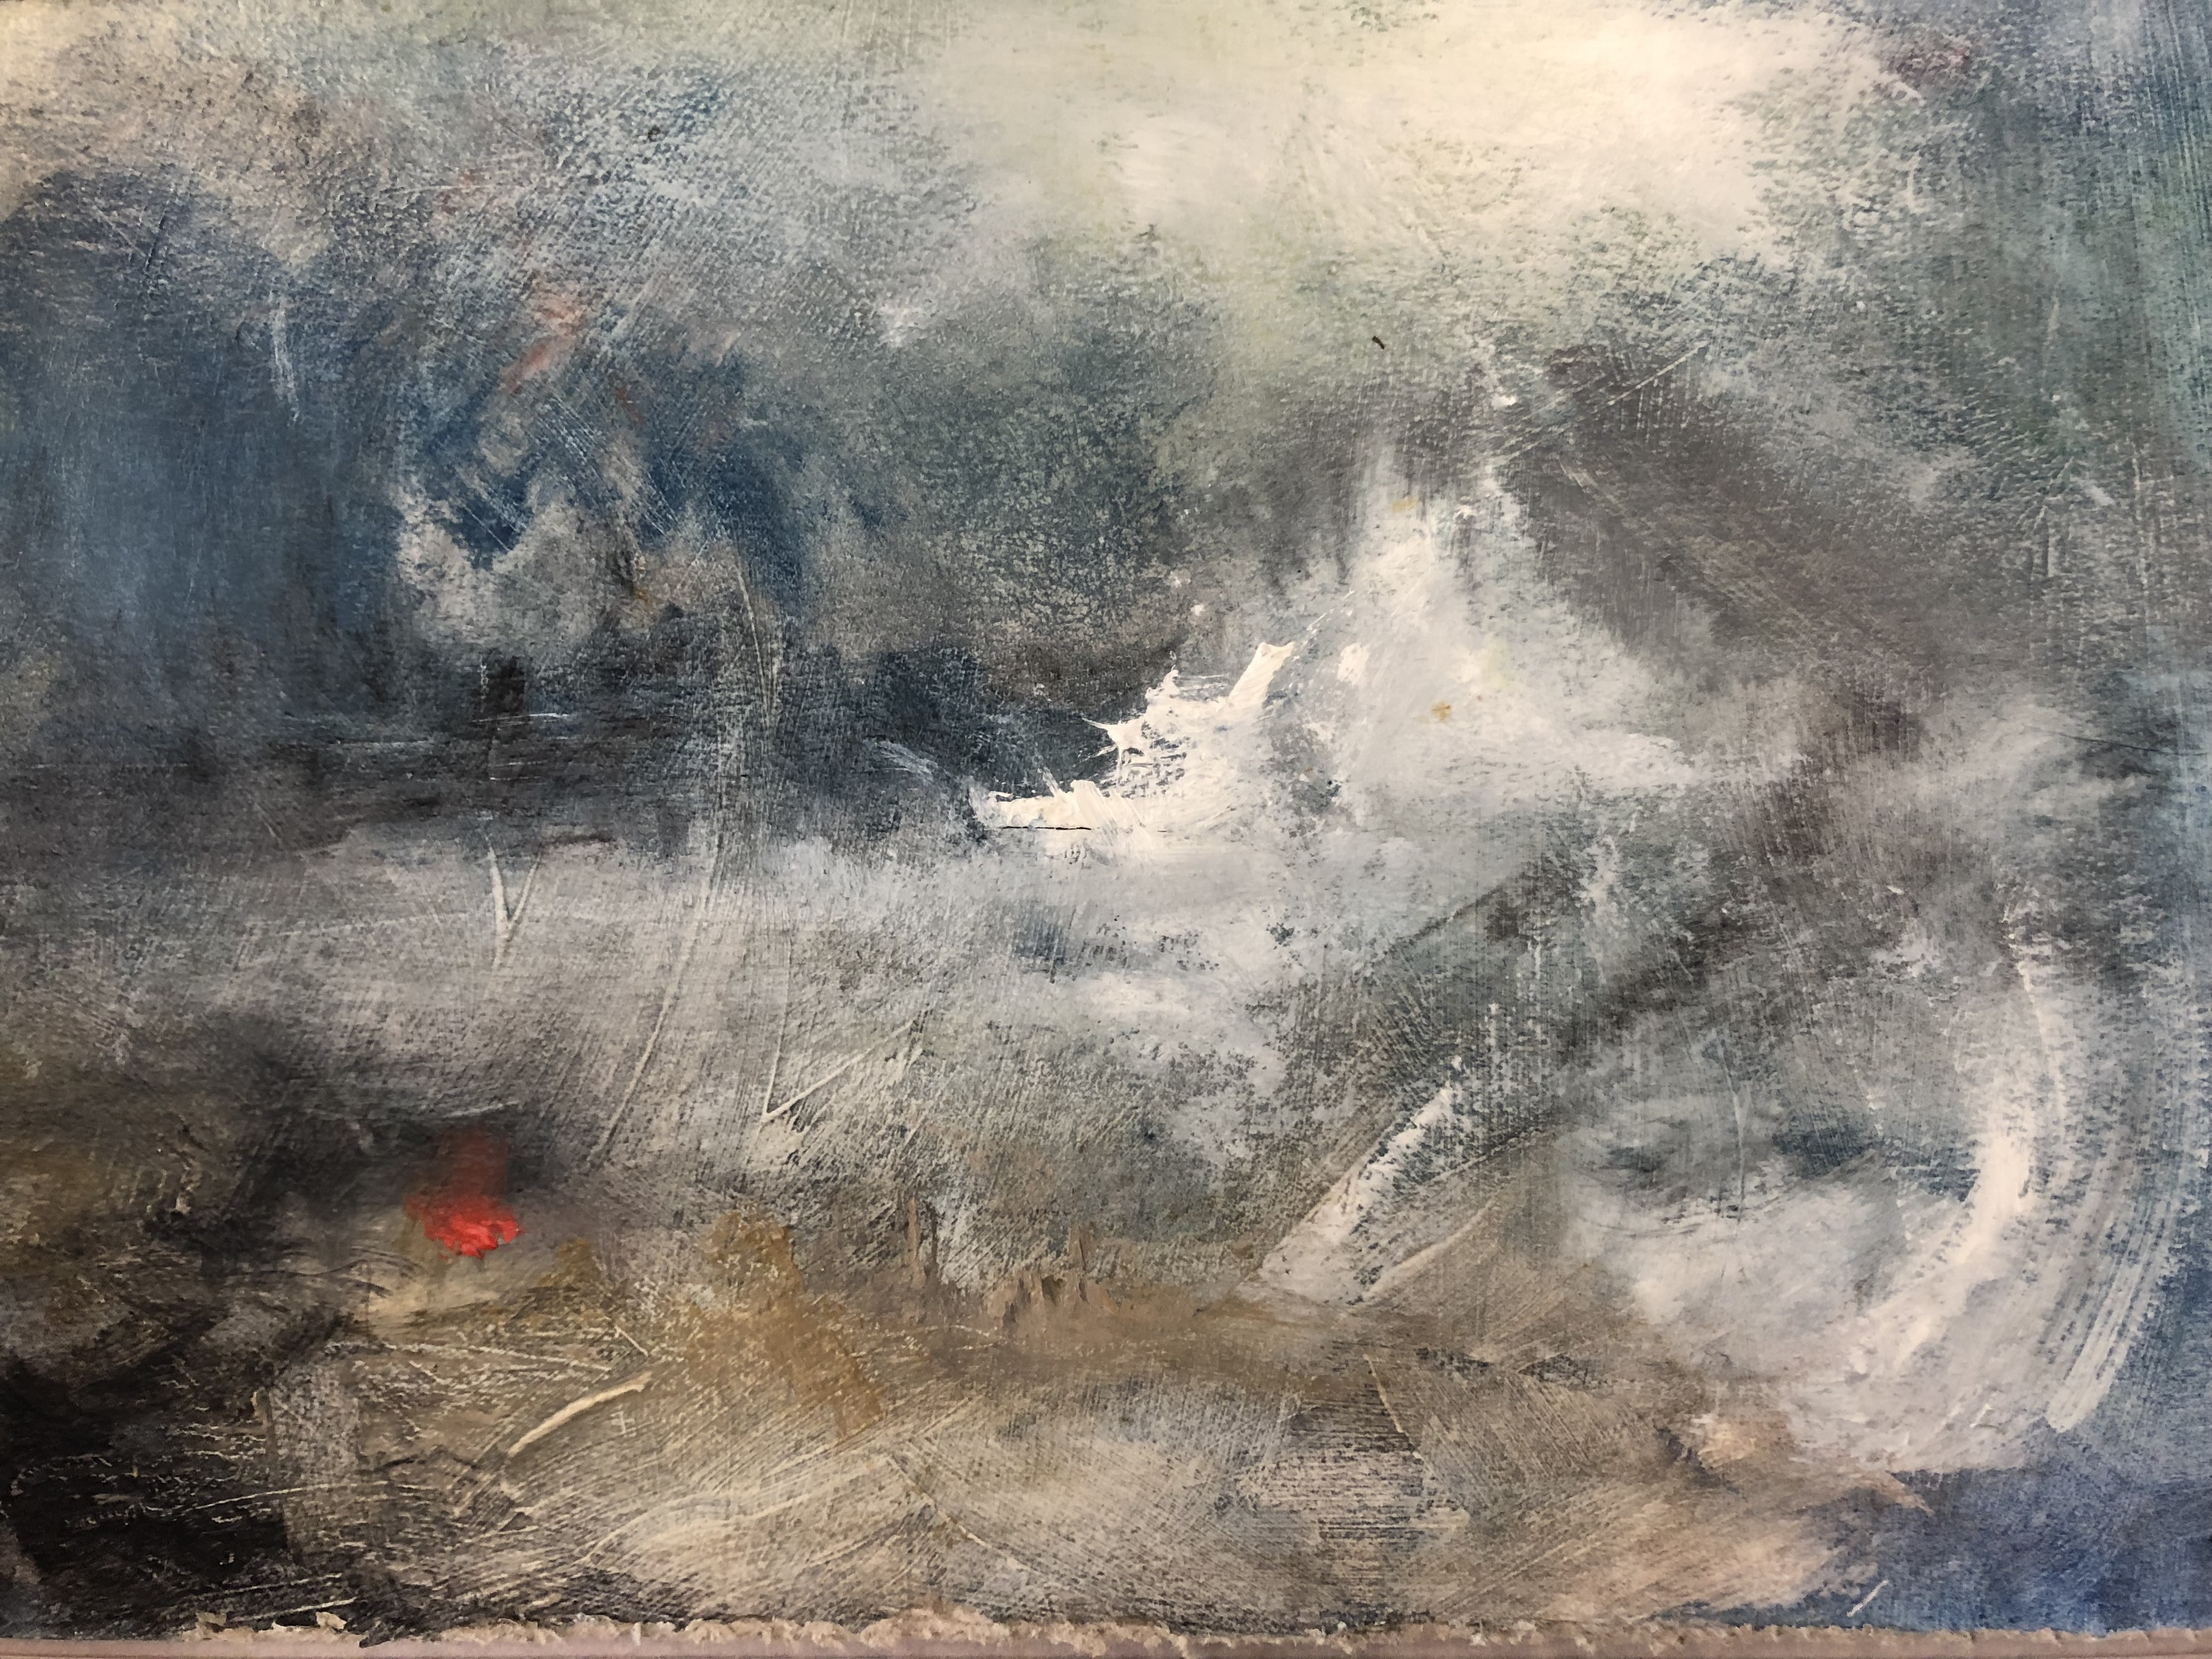 Red Buoy in Storm is an original oil seascape painting by Jemma Powell. The piece depicts a turbulent sea, painted in a turneresque style.